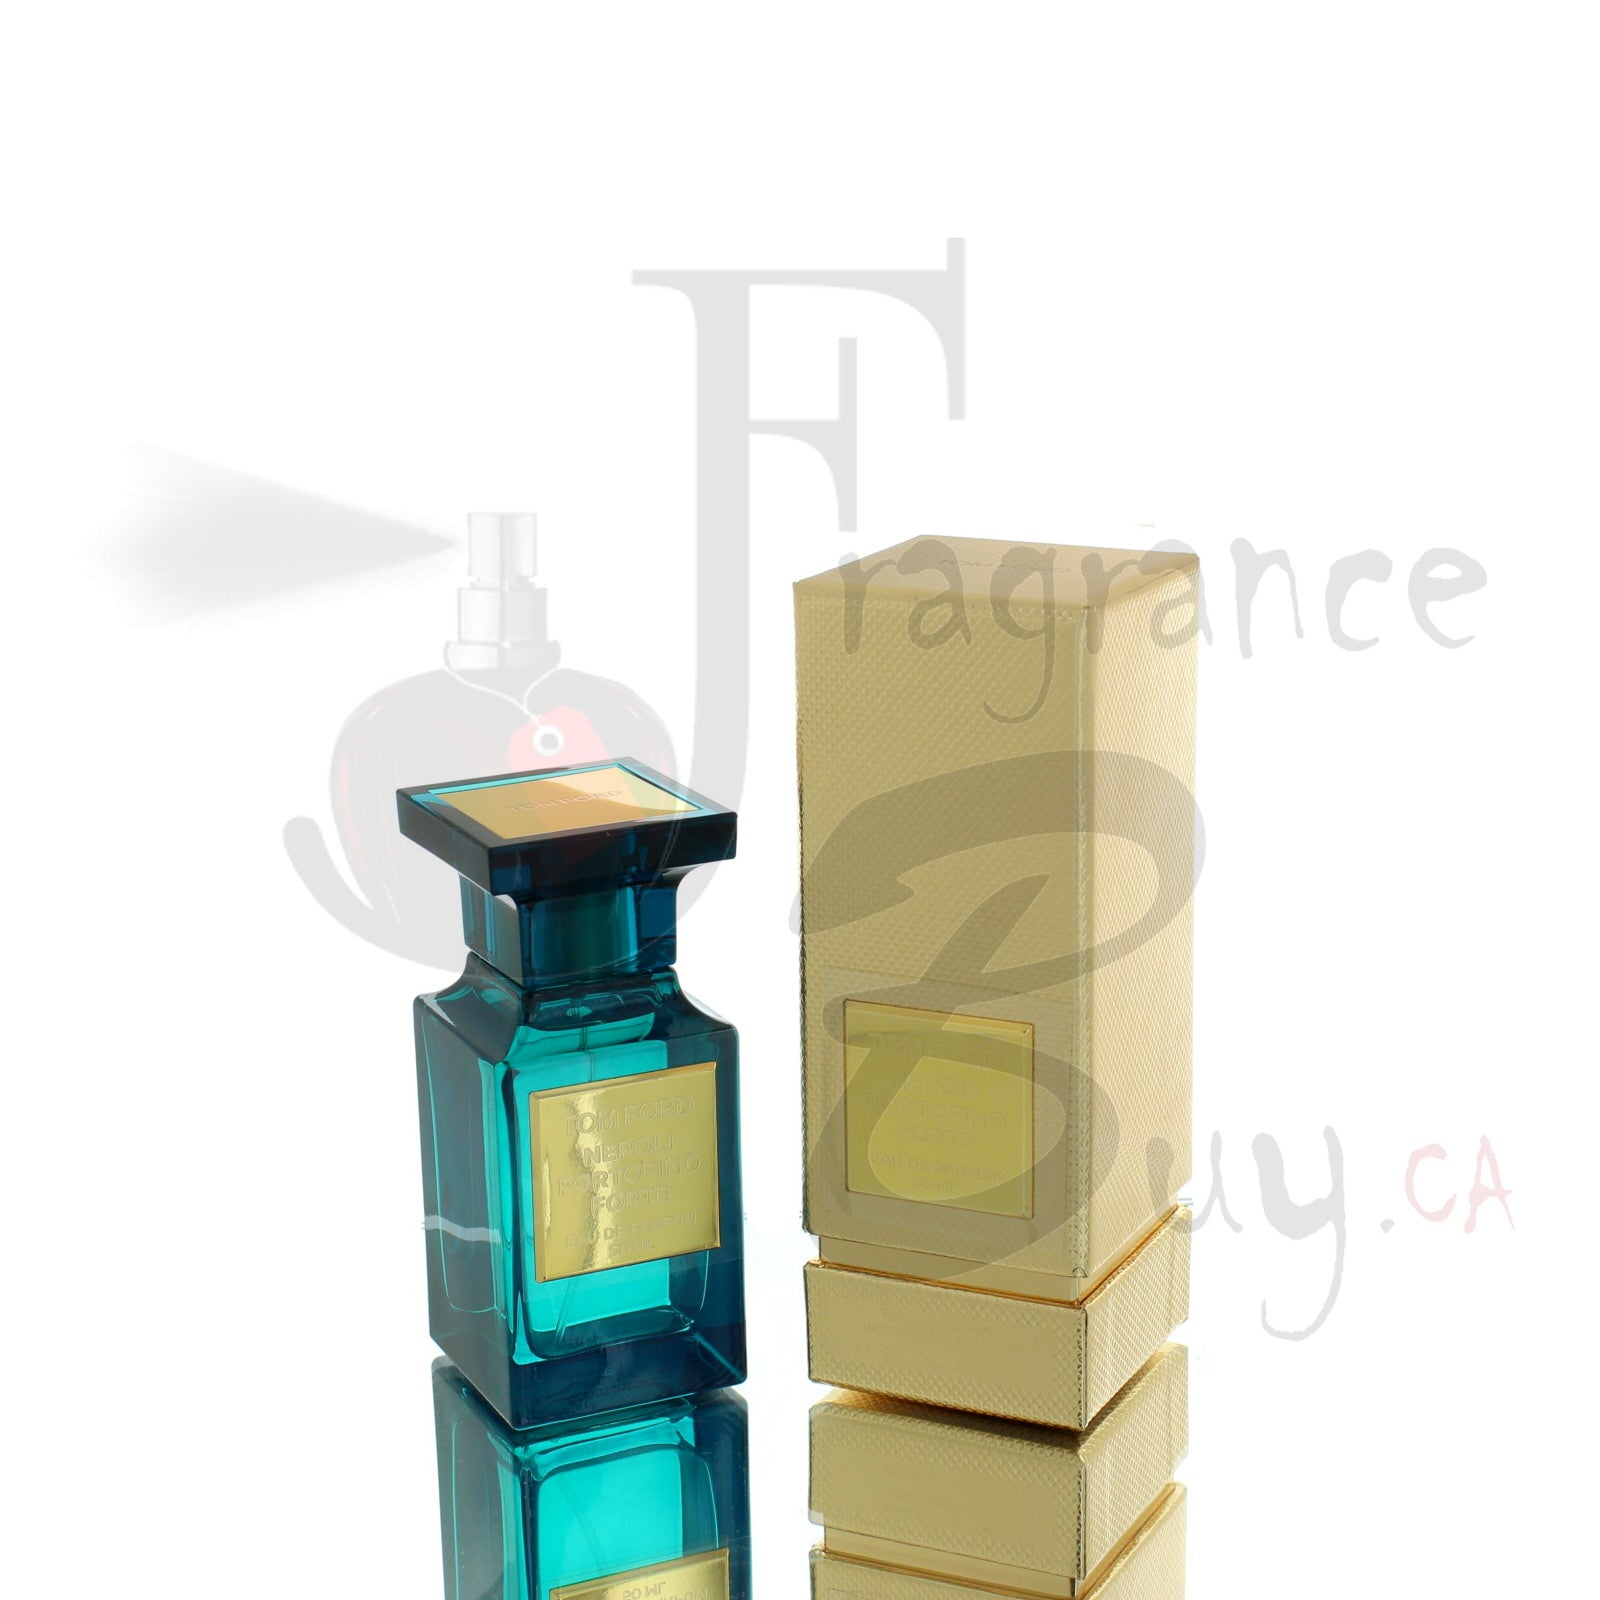 Tom Ford Neroli Portofino Forte For Man/Woman